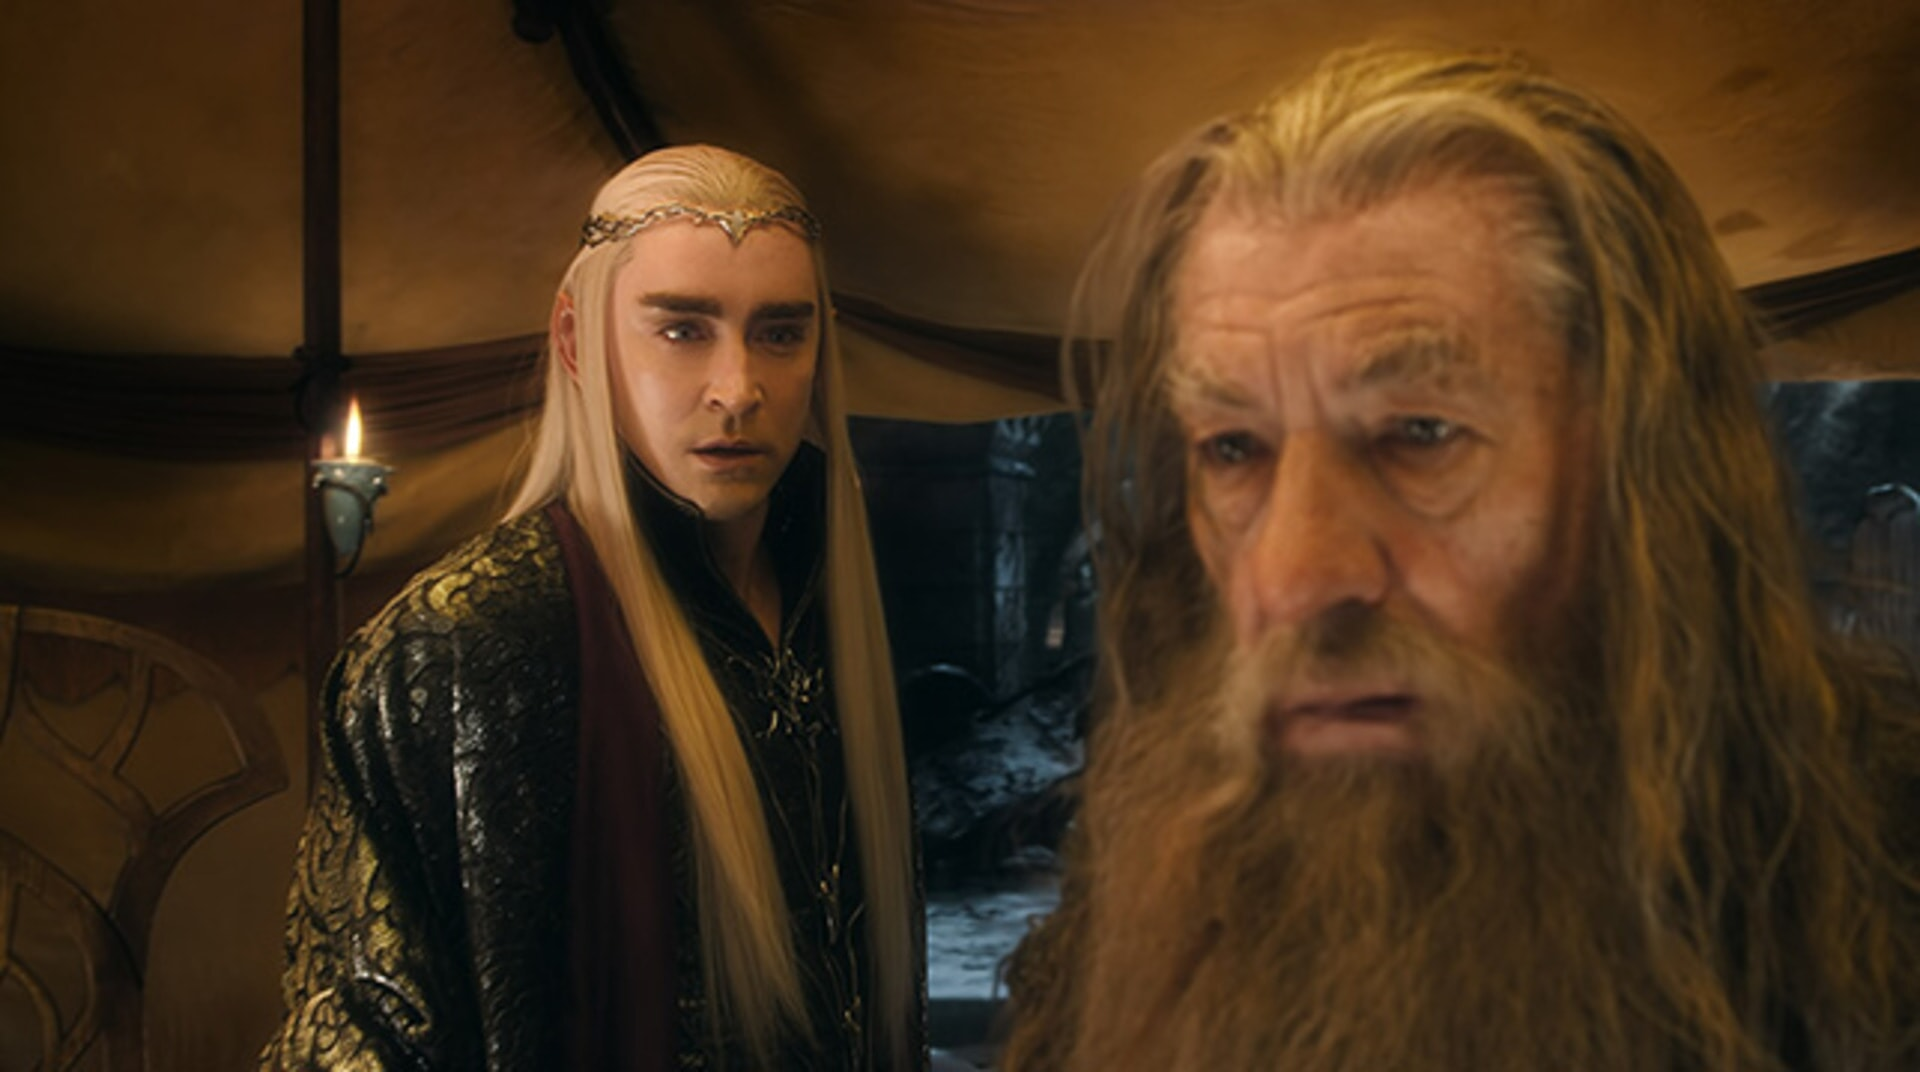 The Hobbit: The Battle of the Five Armies - Image 26